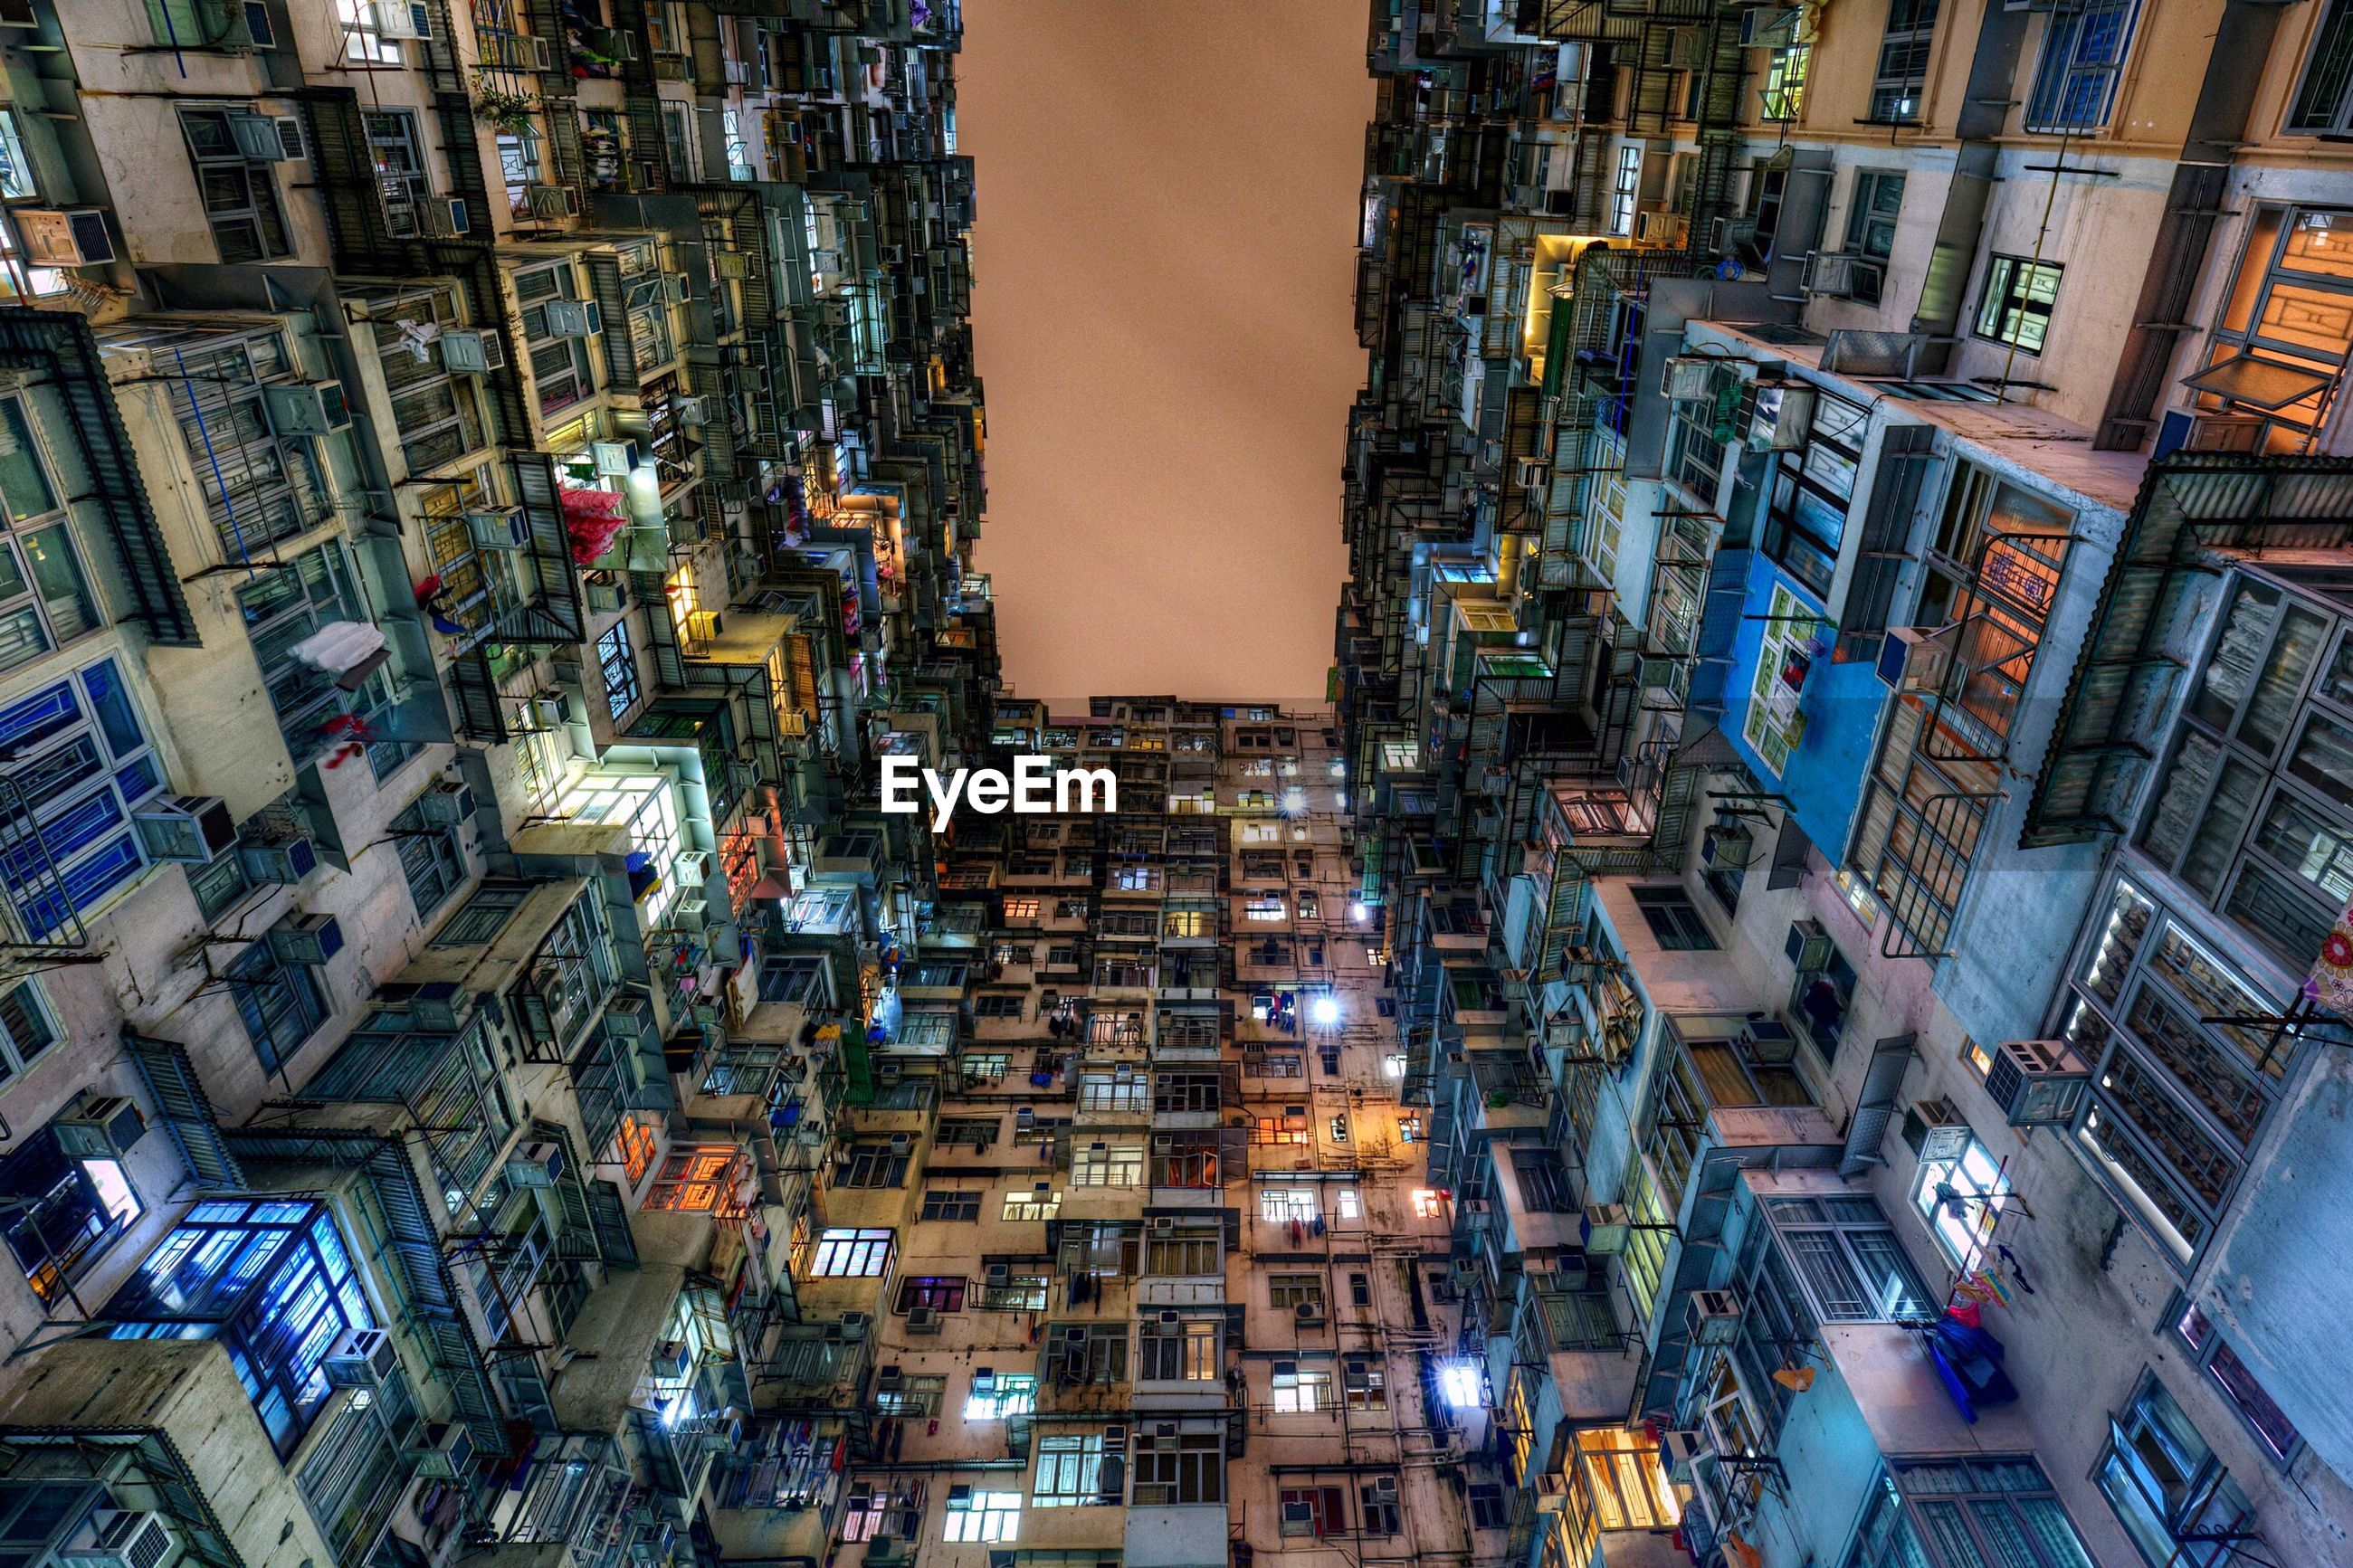 Low angle view of montane mansiona at quarry bay in city during night